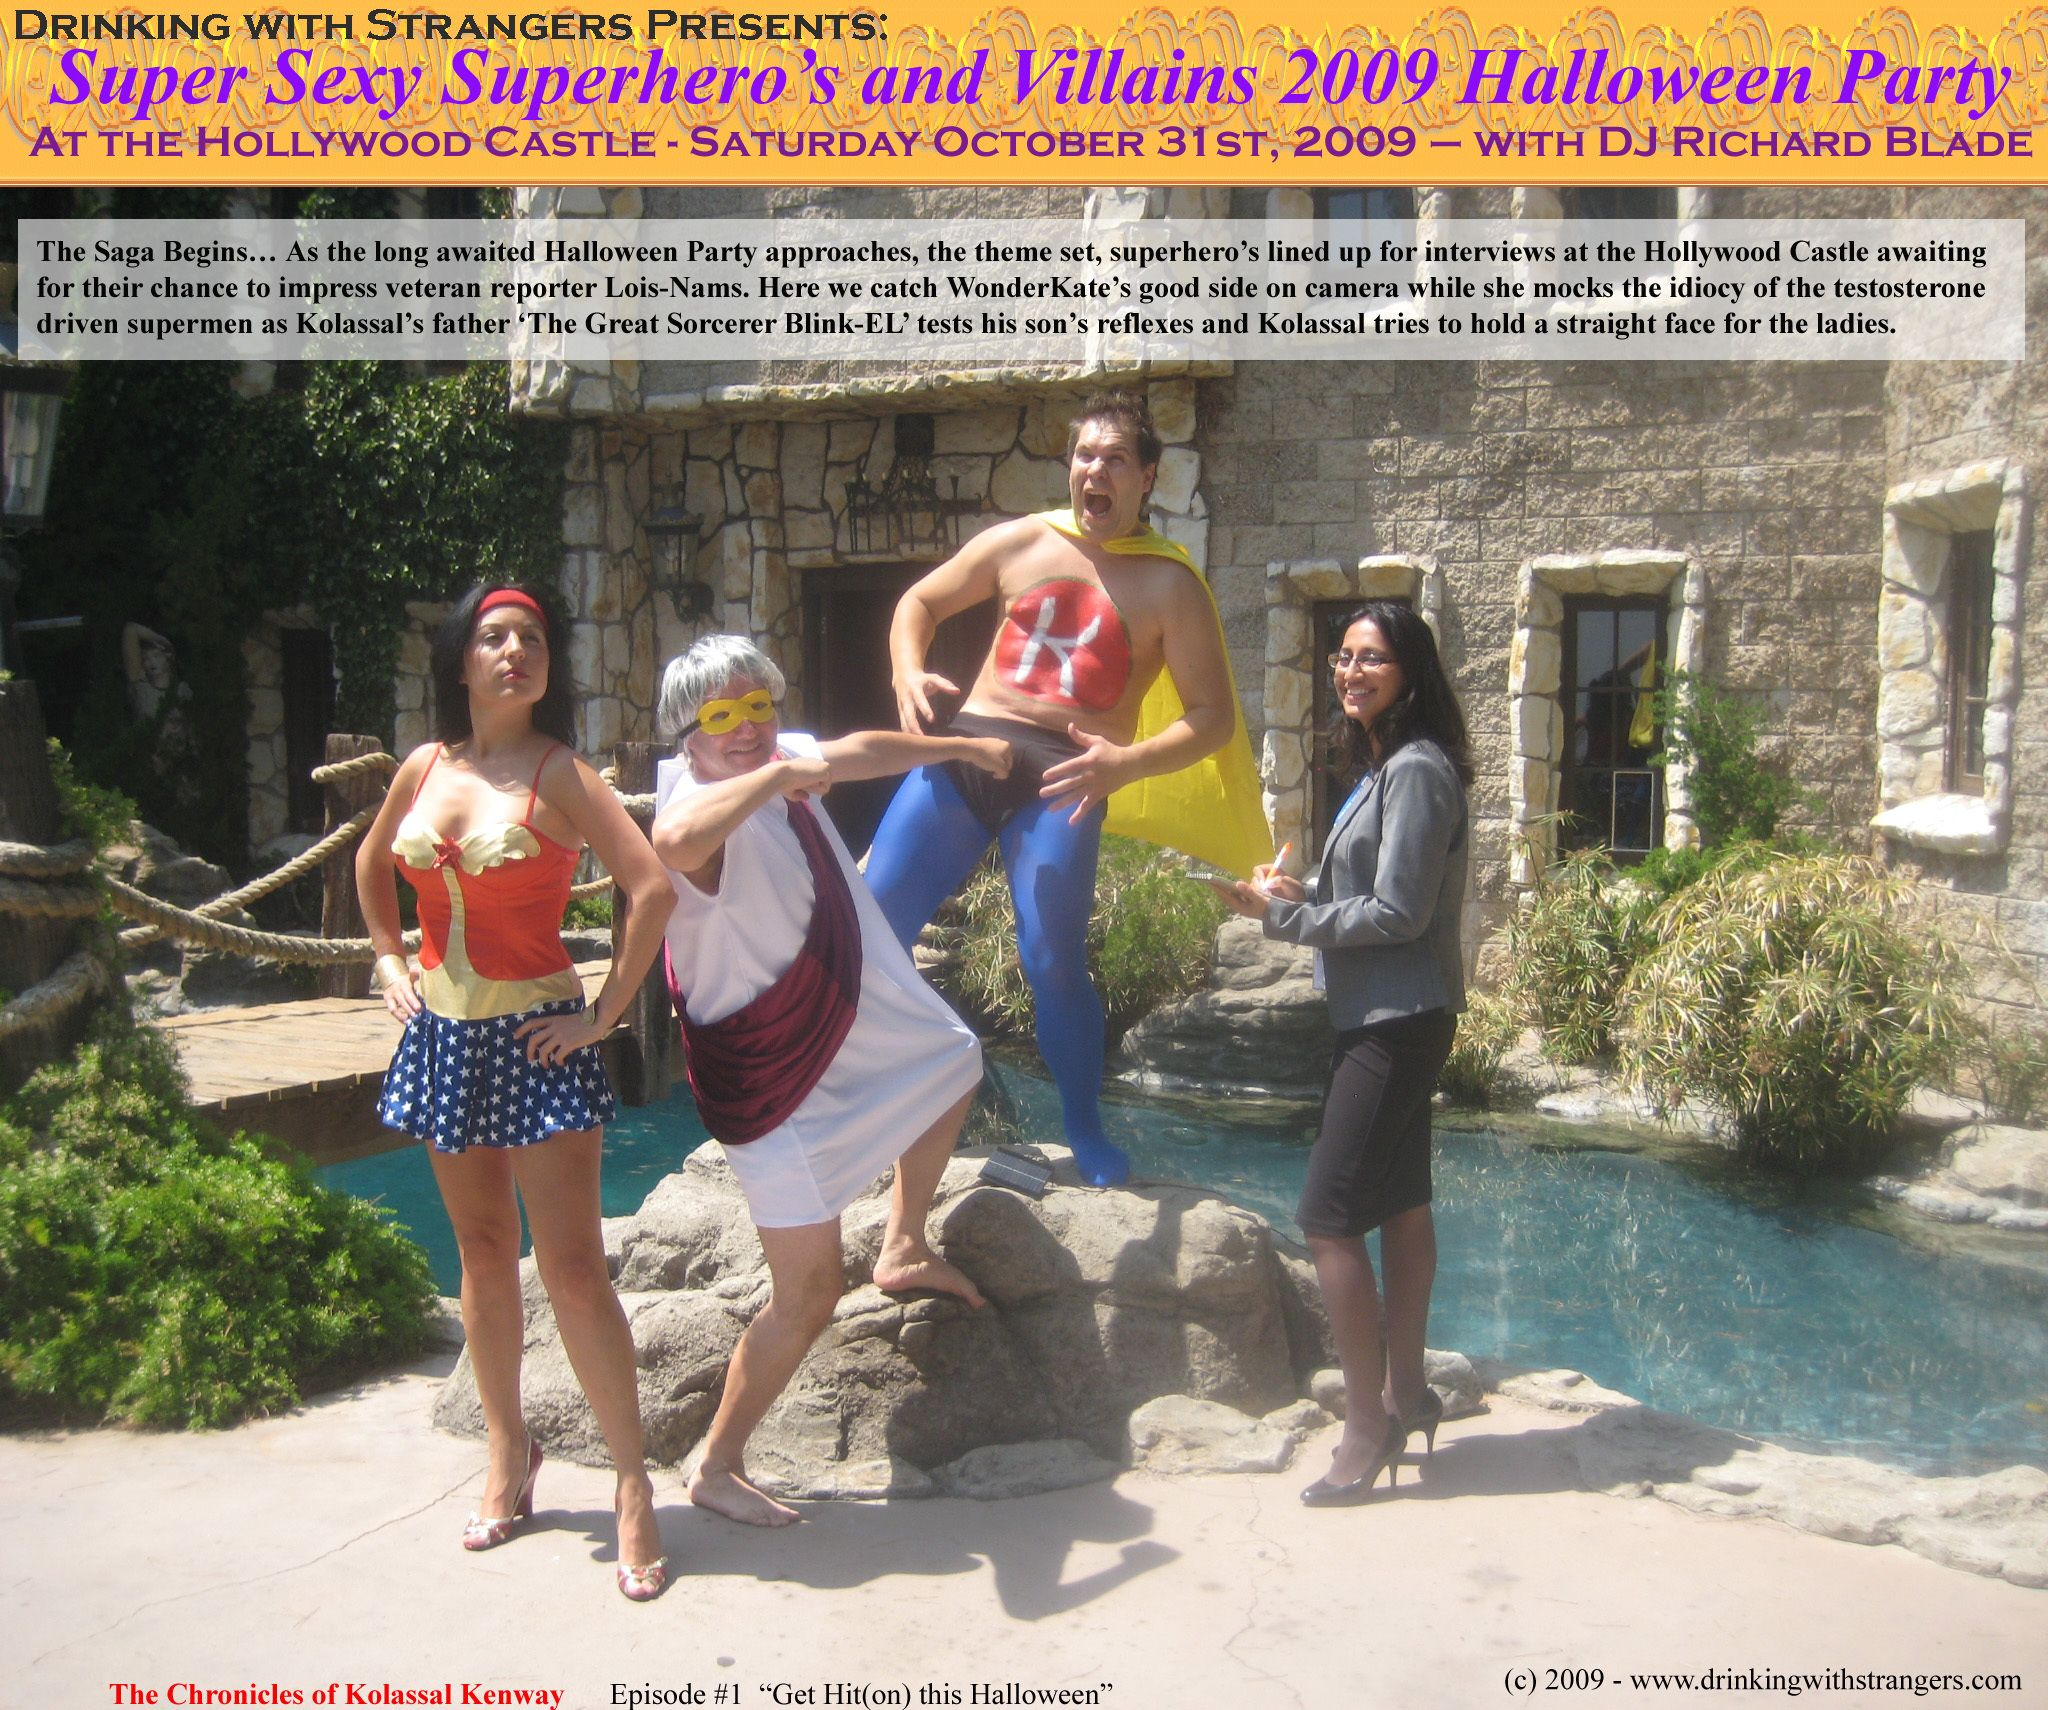 DWS - Super Sexy Superhero Castle Halloween Party with DJ Richard ...